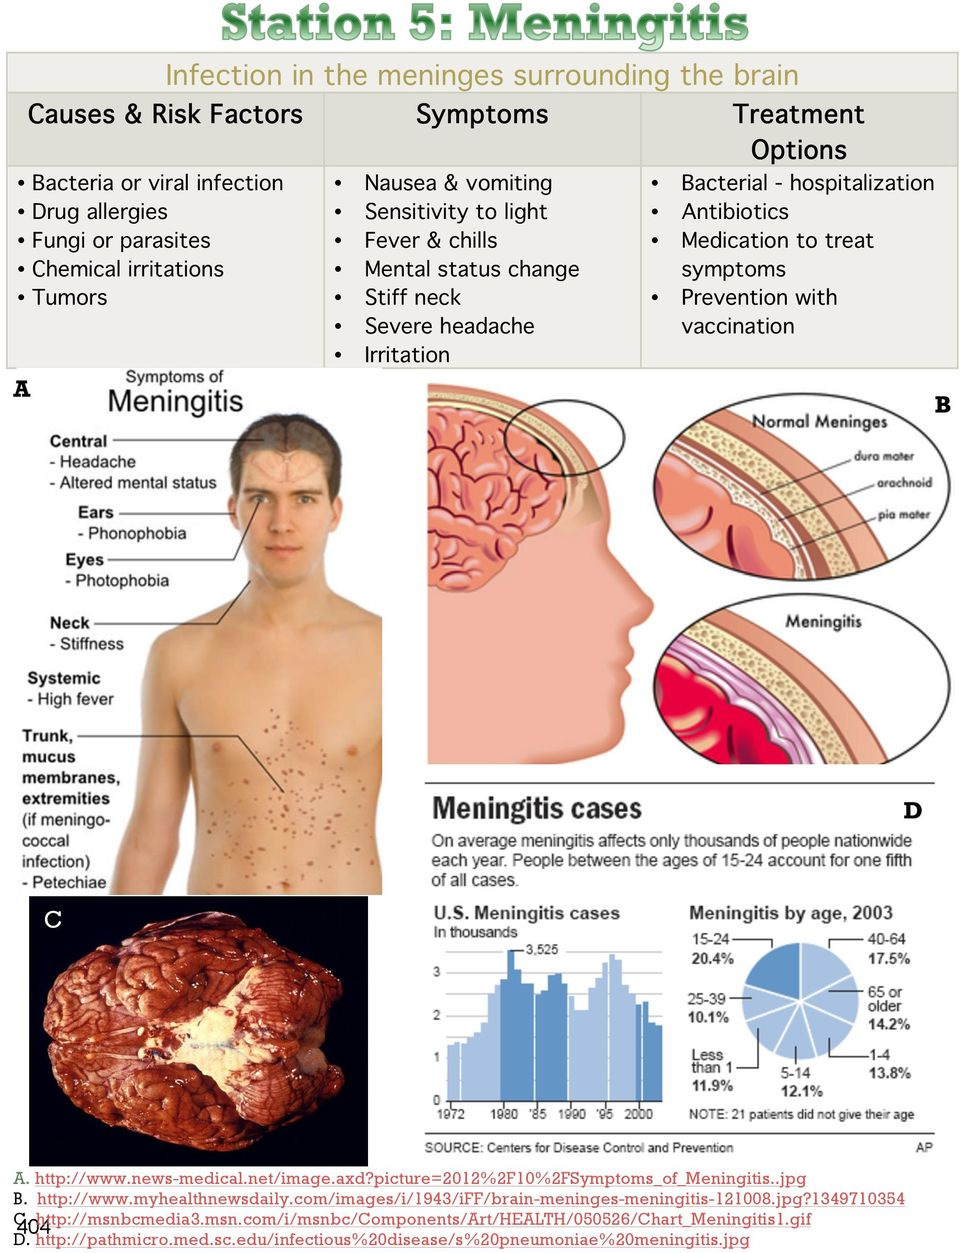 with vaccination A B D C A. http://www.news-medical.net/image.axd?picture=2012%2f10%2fsymptoms_of_meningitis..jpg B. http://www.myhealthnewsdaily.